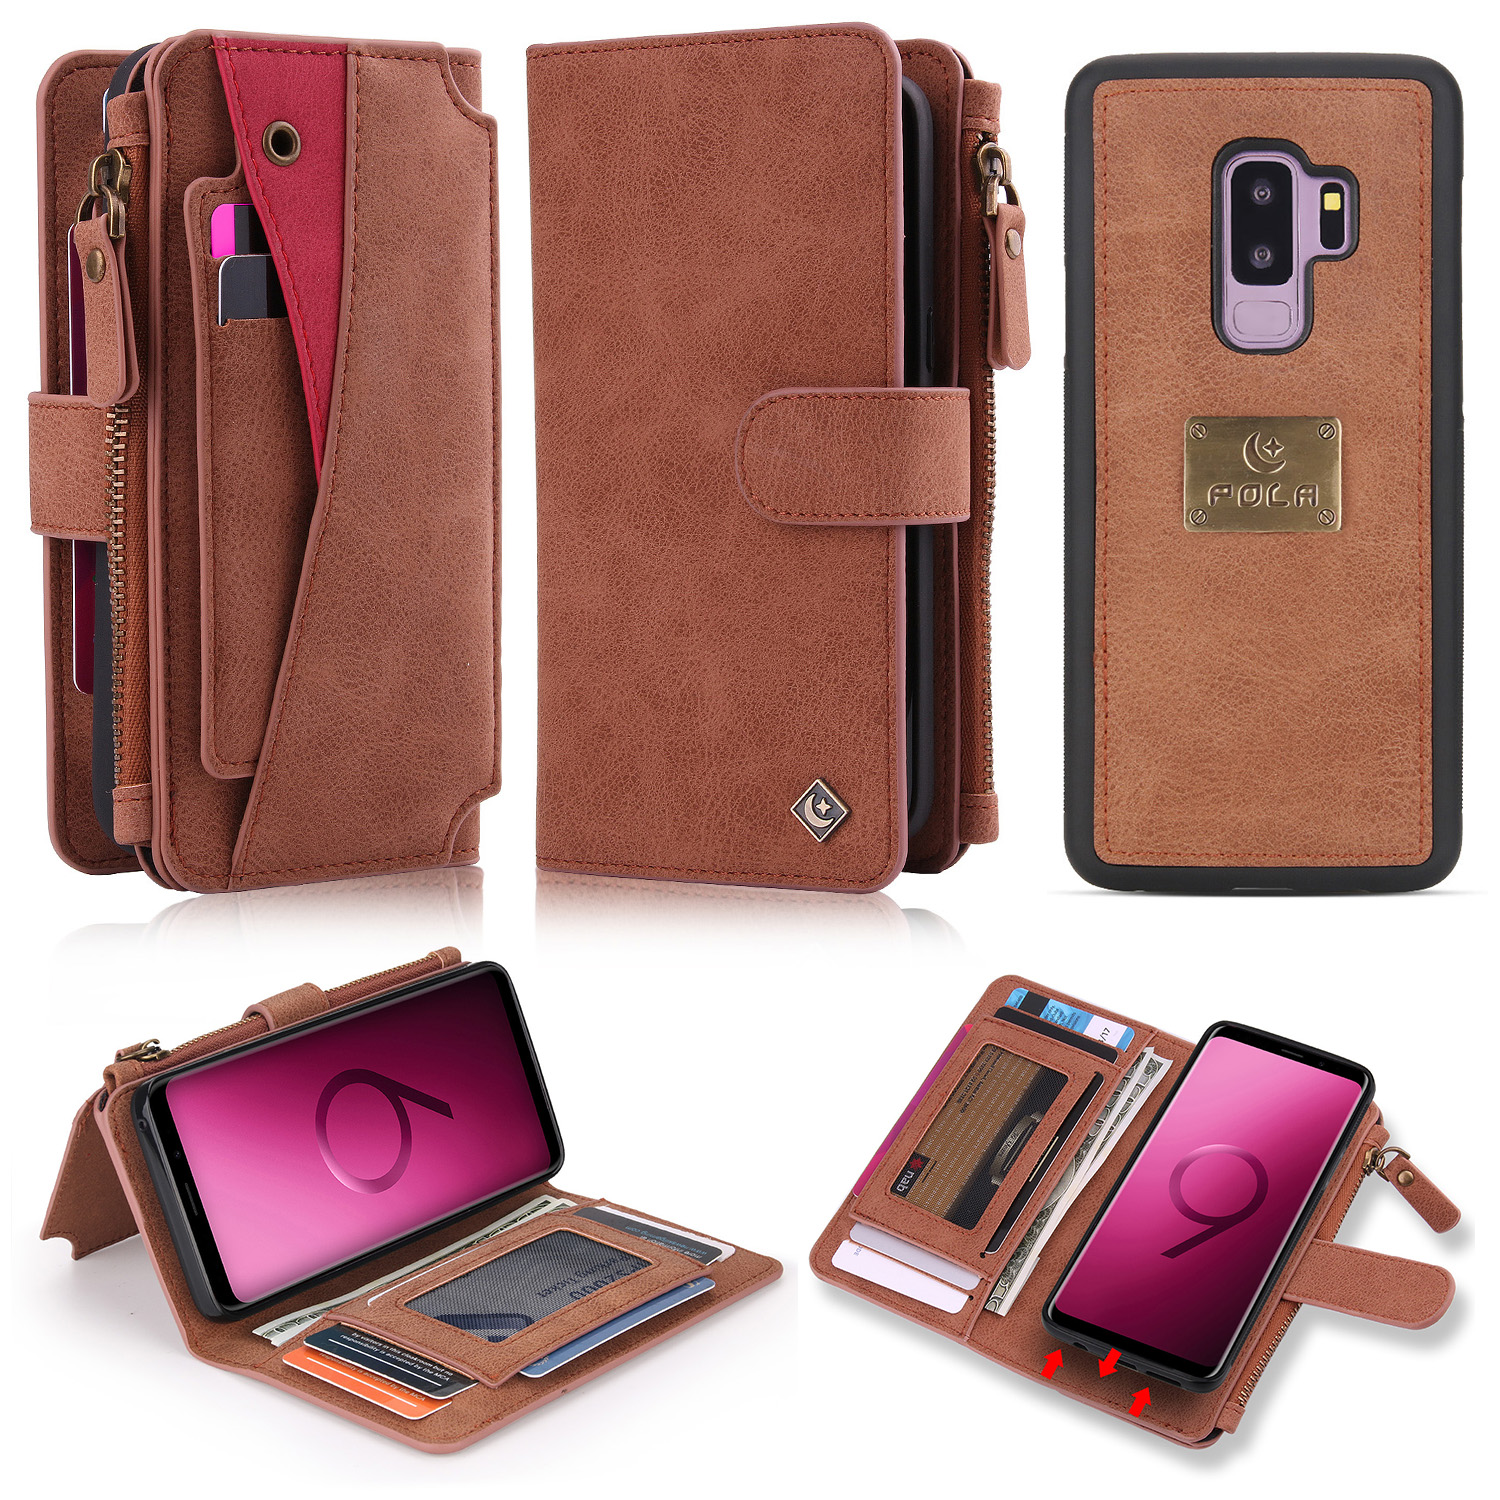 Galaxy S9 Case, Allytech PU Leather Folio Flip Stand Detachale Wallet Case Build In Metal Plate for Magnetic Car Mount Cards Holder Purase Clutch Zipper Wallet Cover for Samsung Galaxy s9, Brown